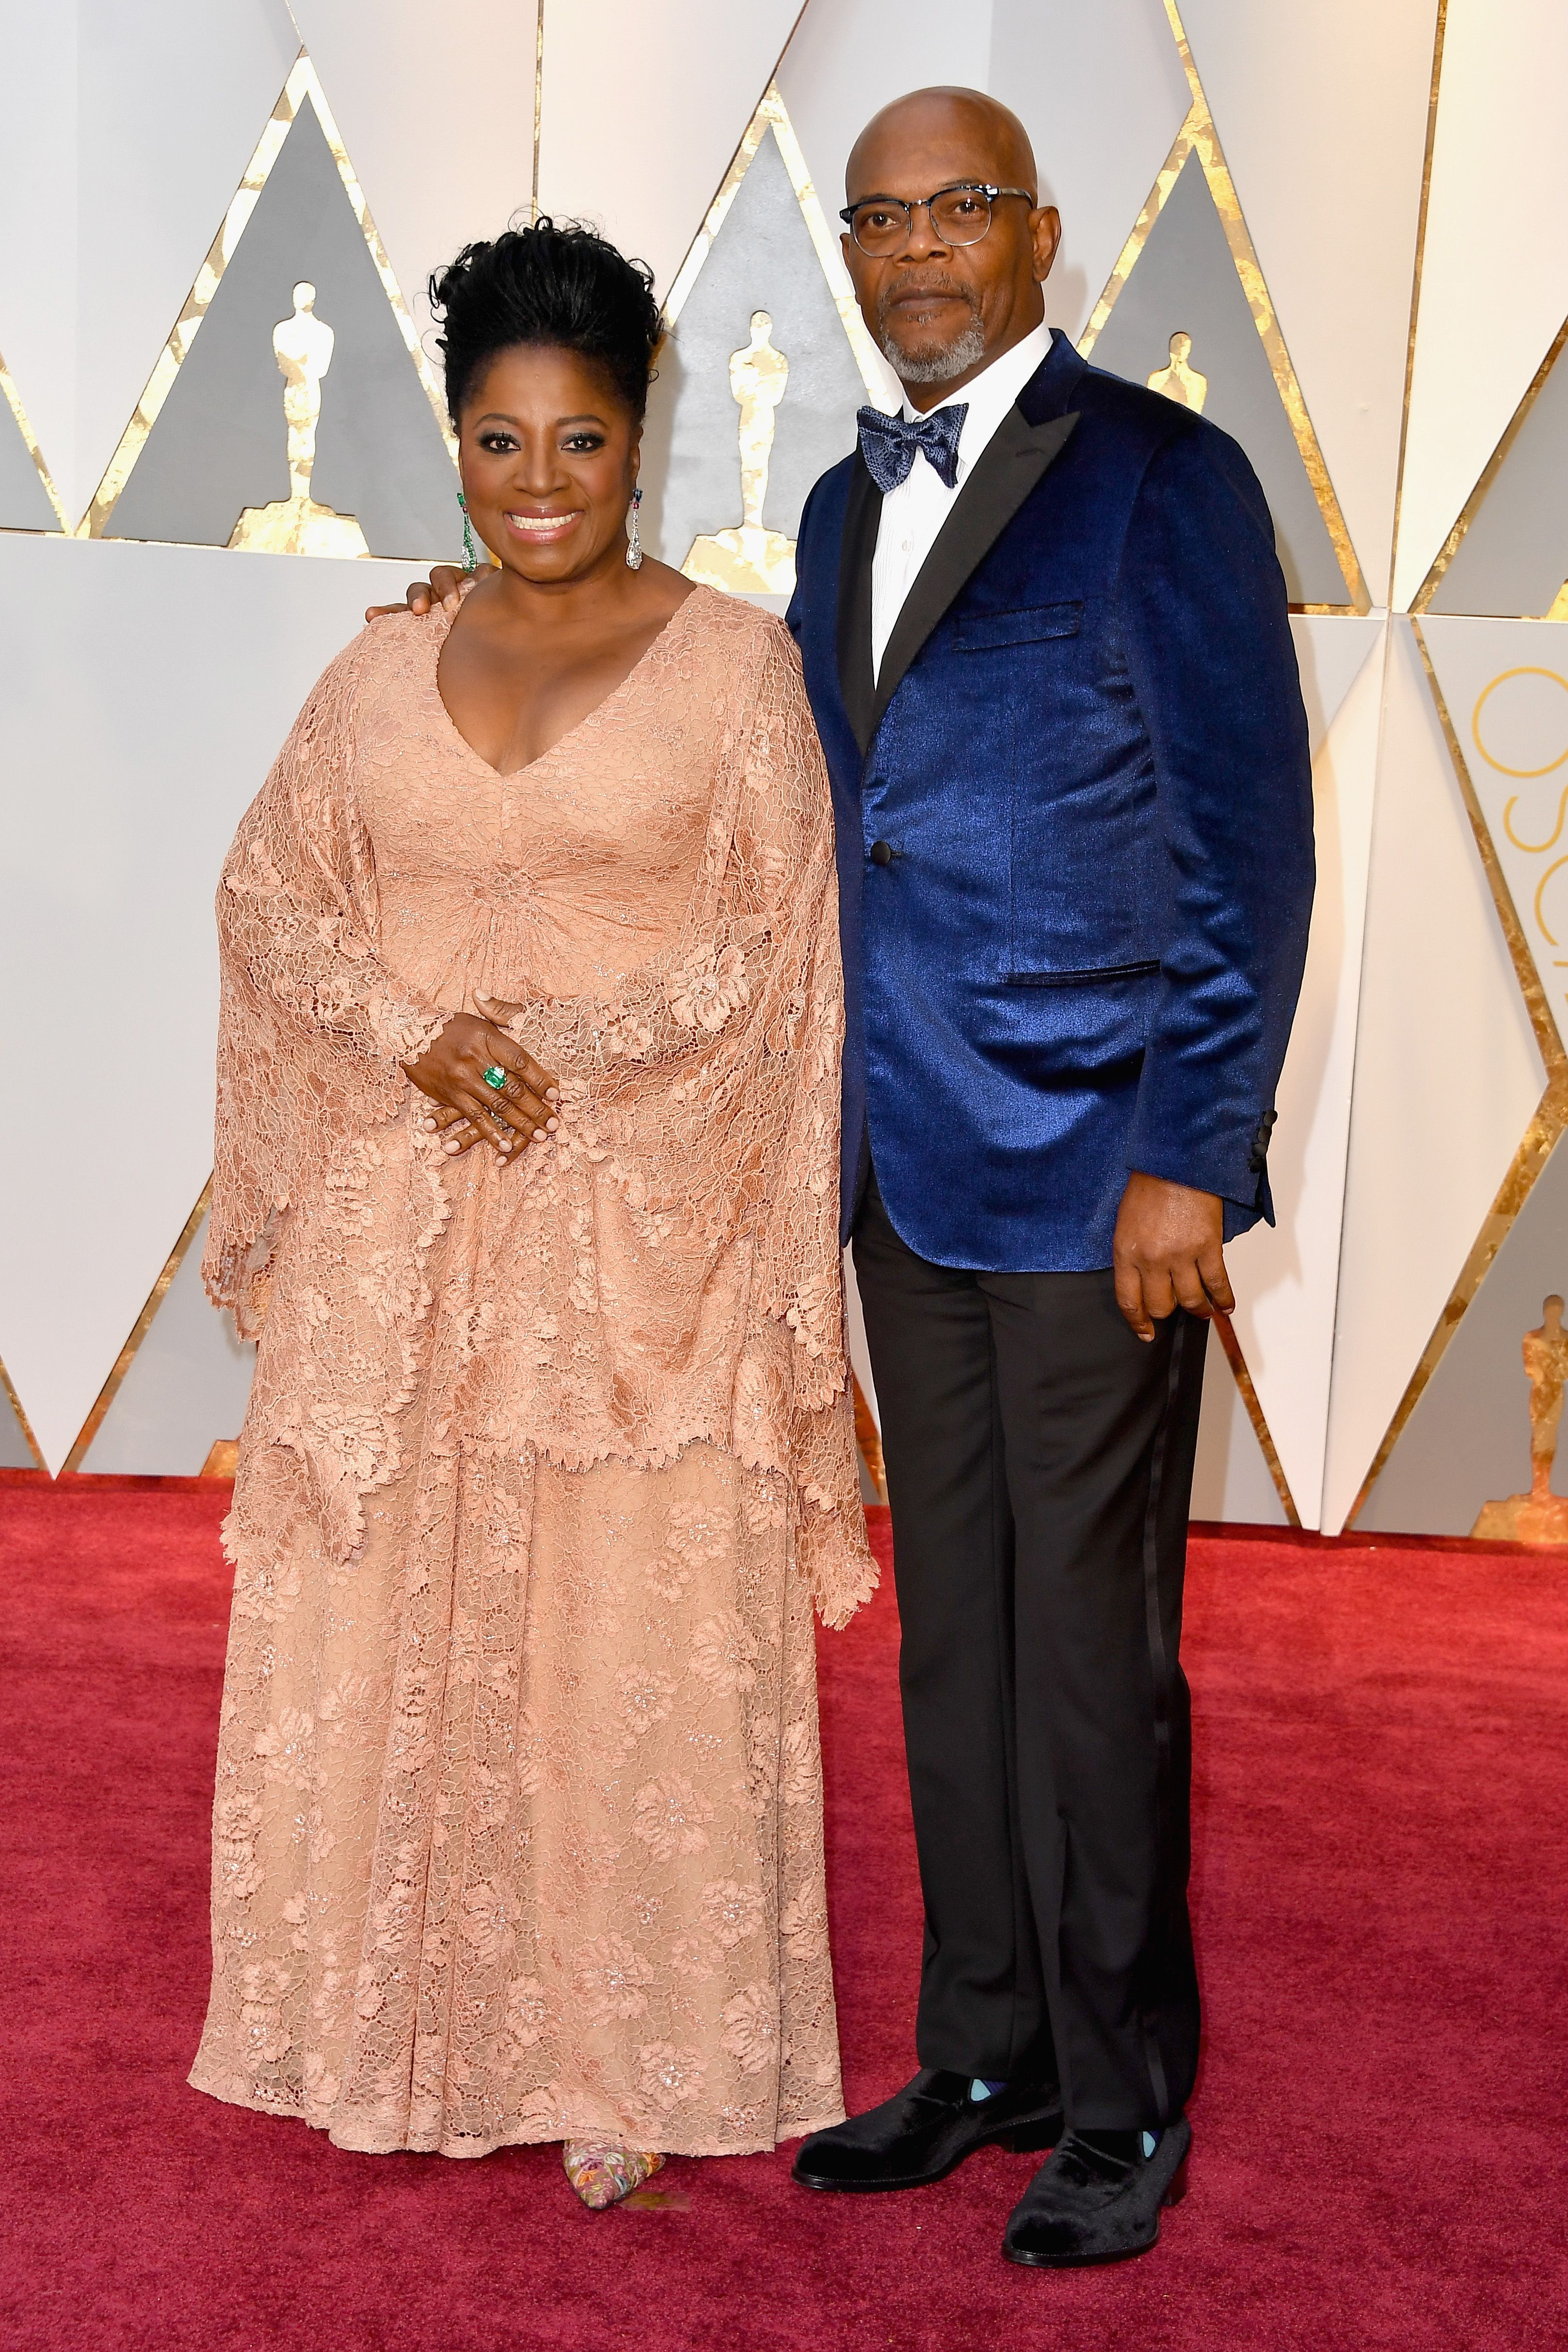 28 Of The Longest Celebrity Marriages And Relationships